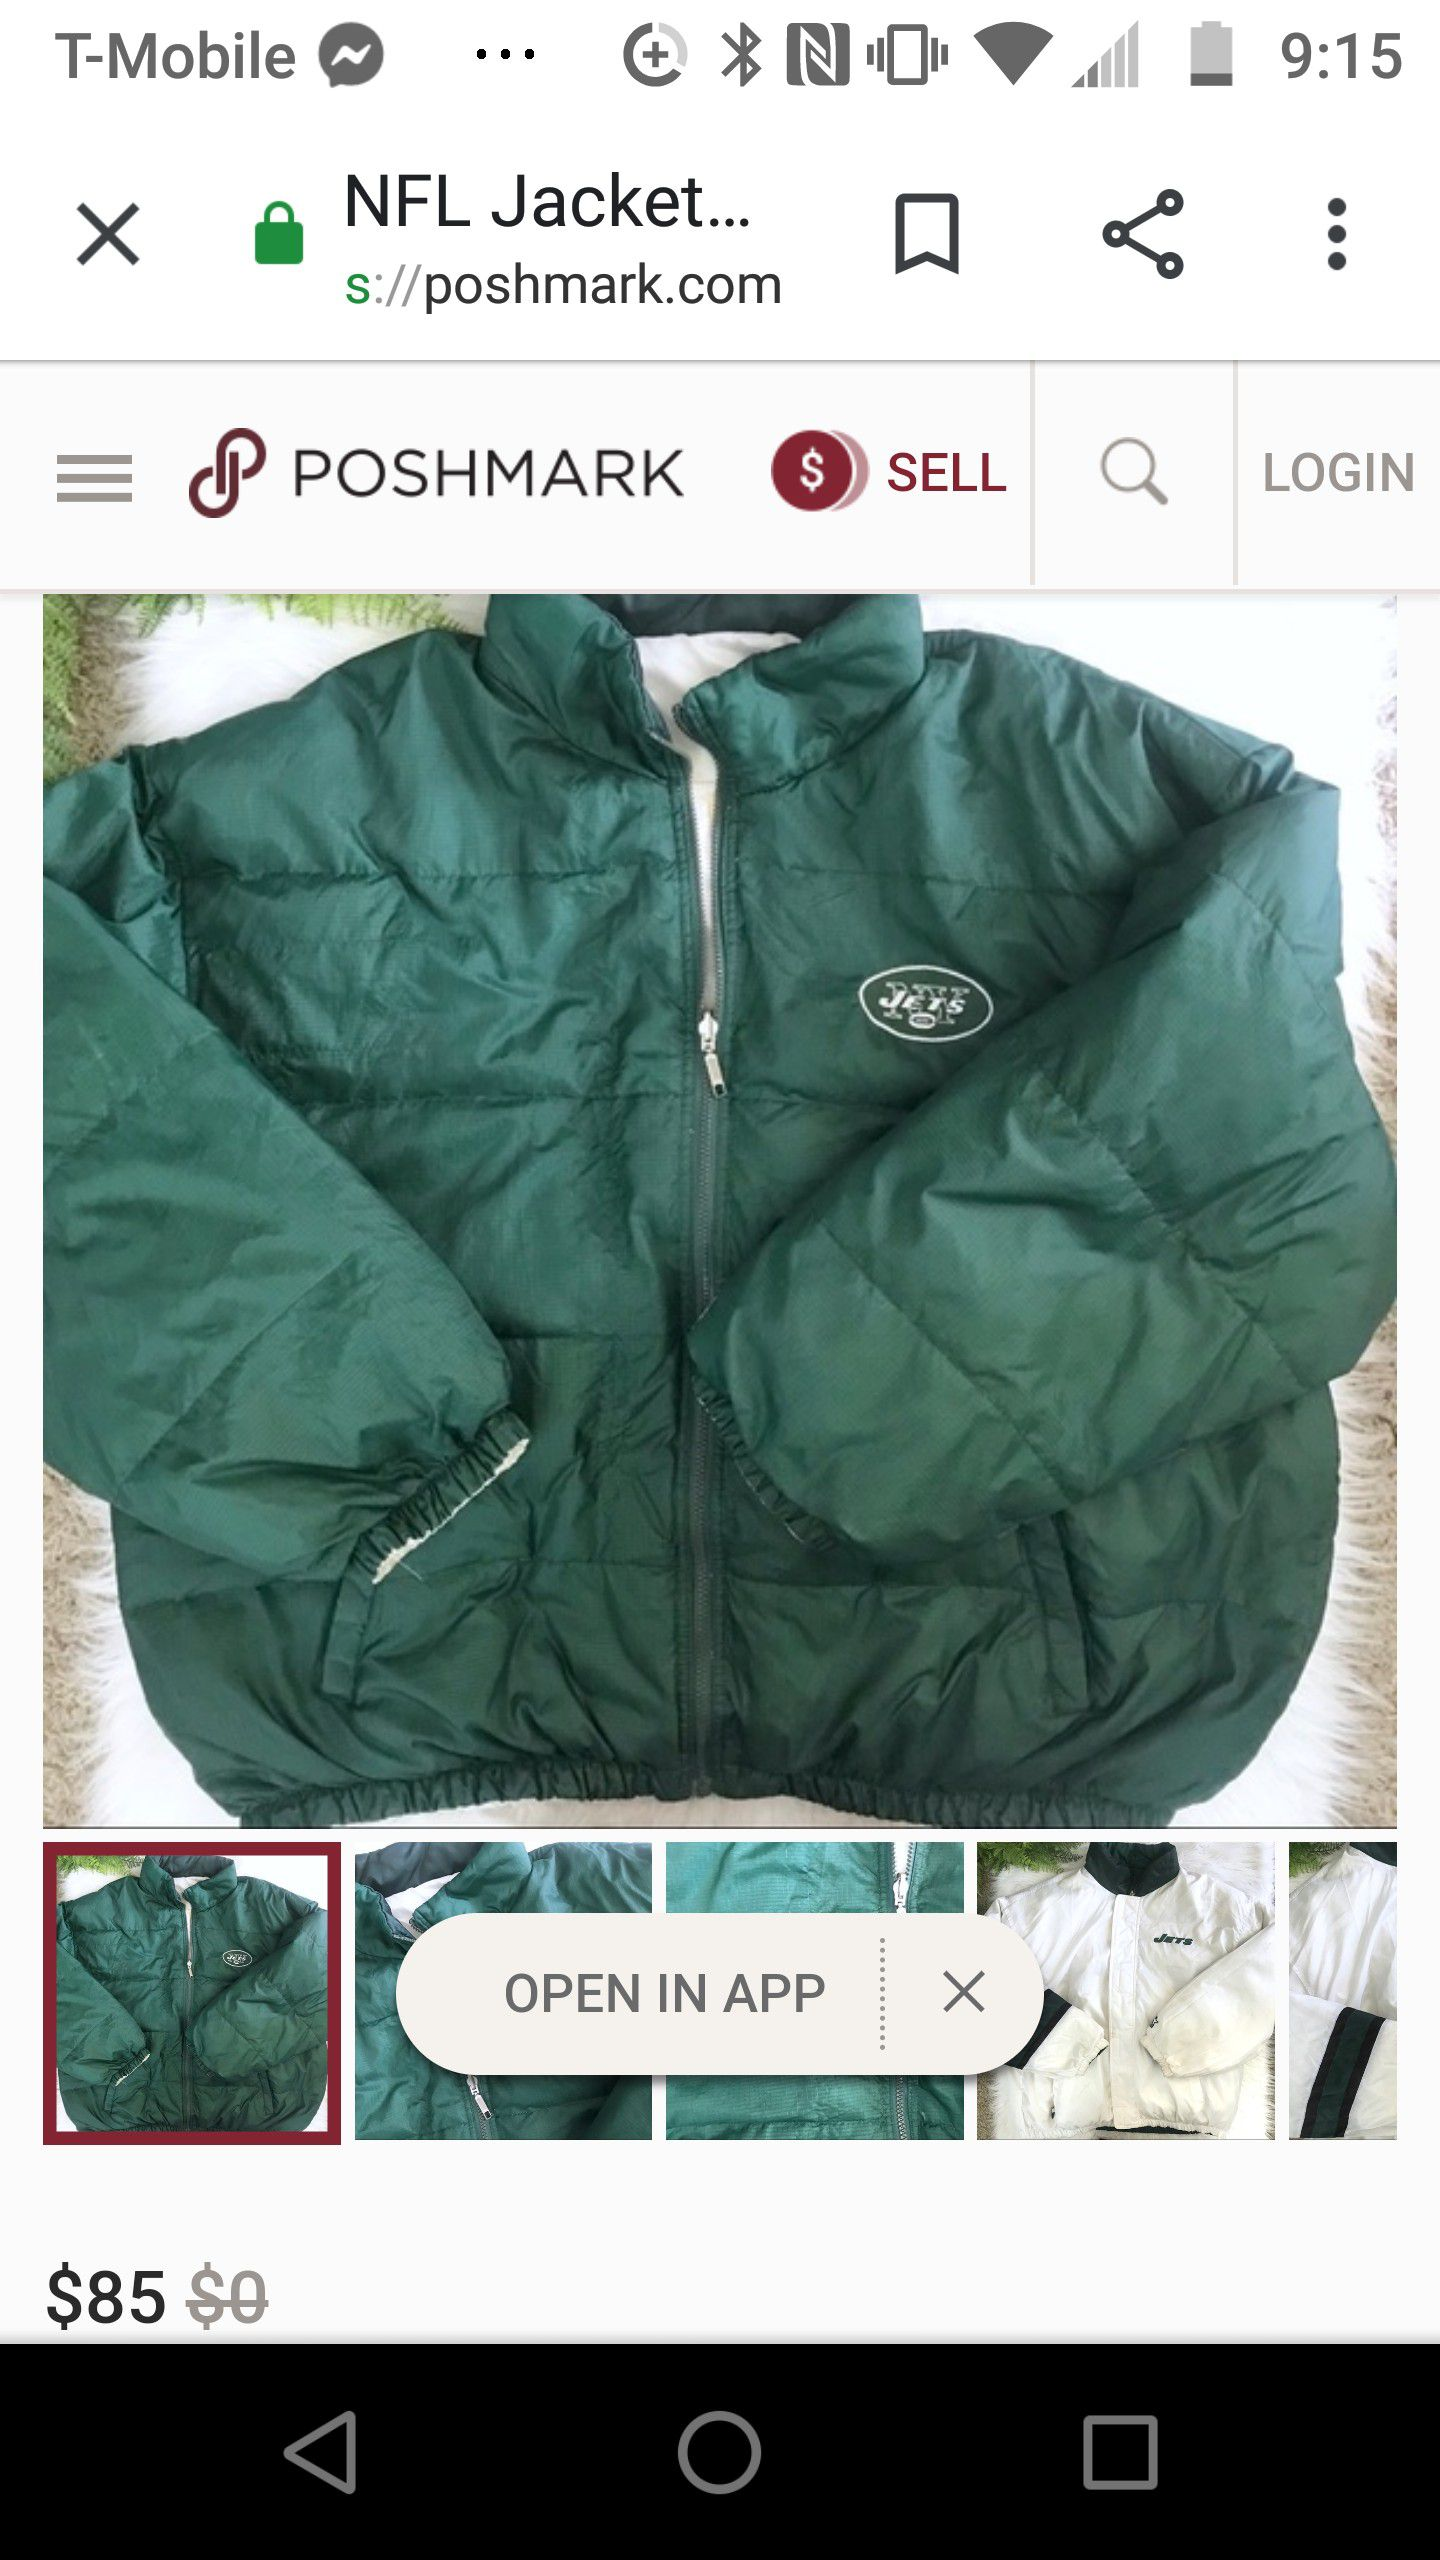 Old school jets jacket double sided